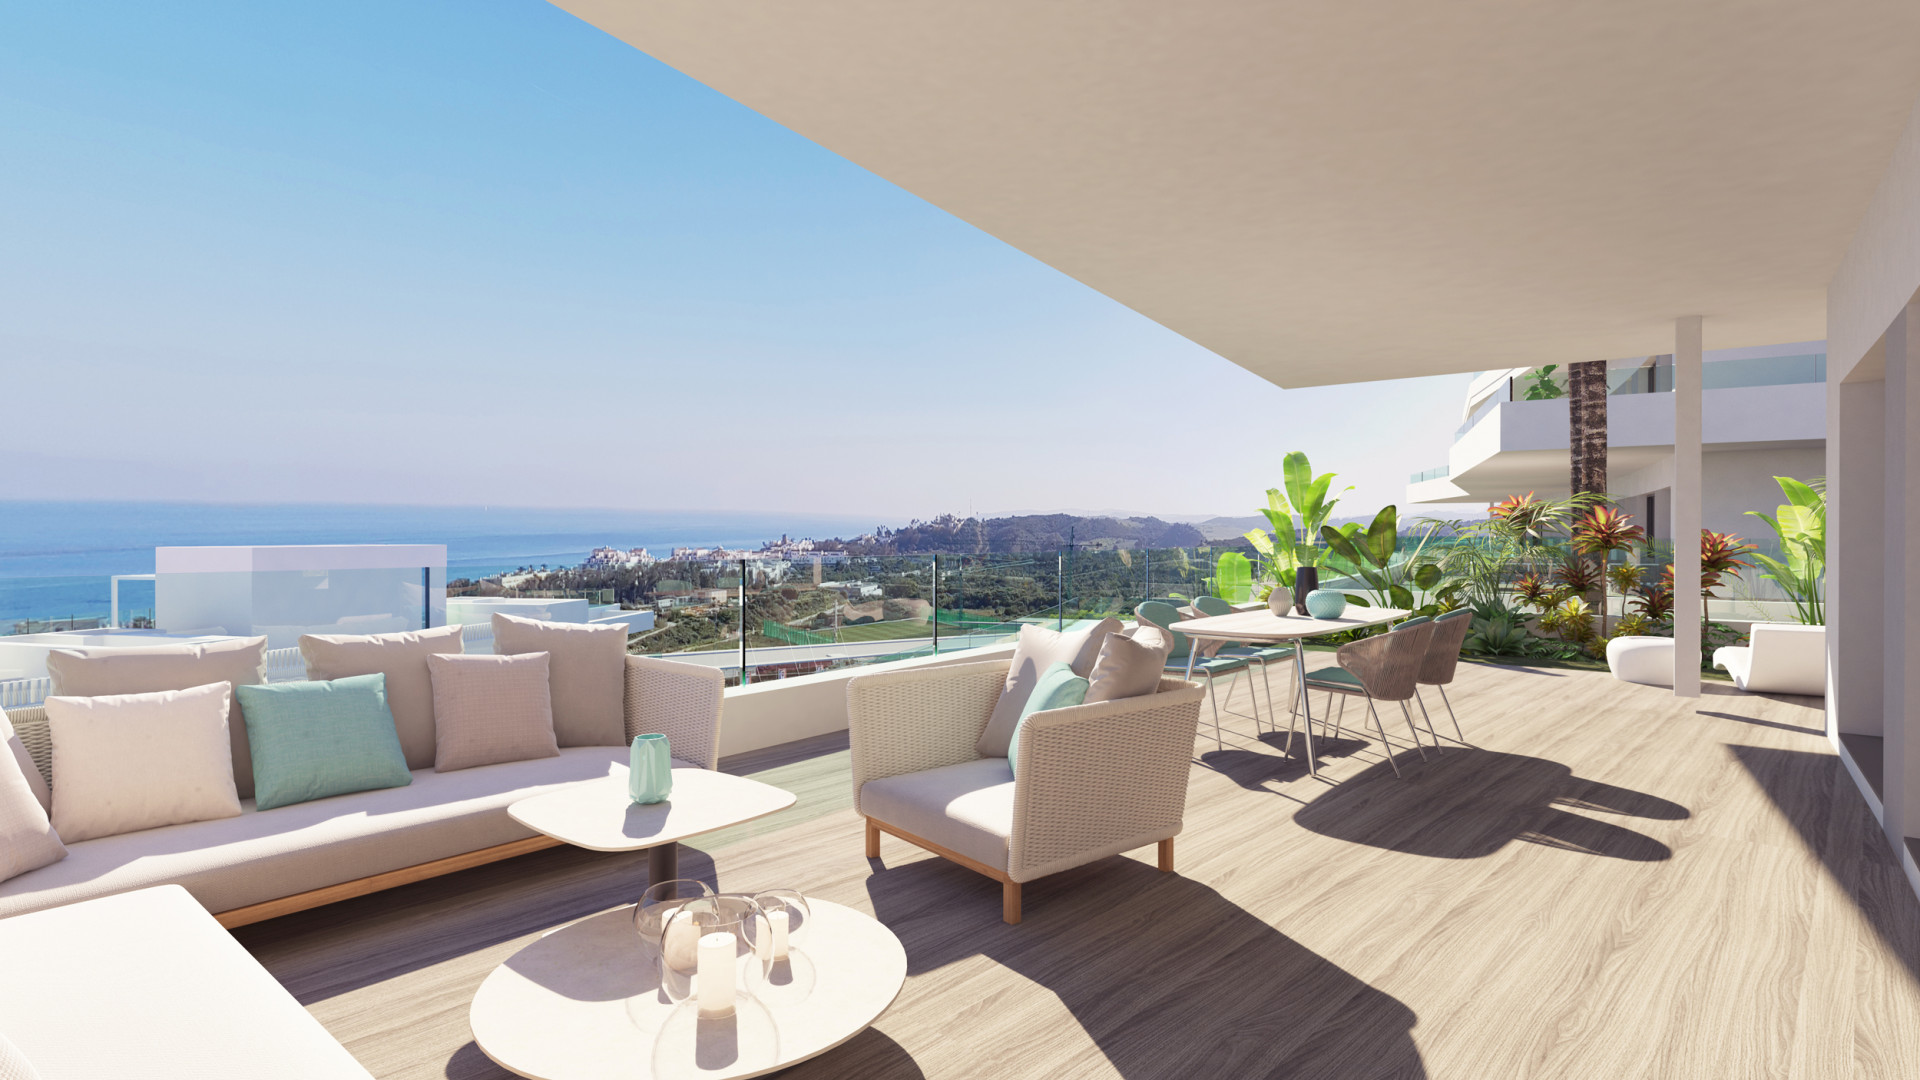 Off plan contemporary apartments and penthouses for sale in Estepona west